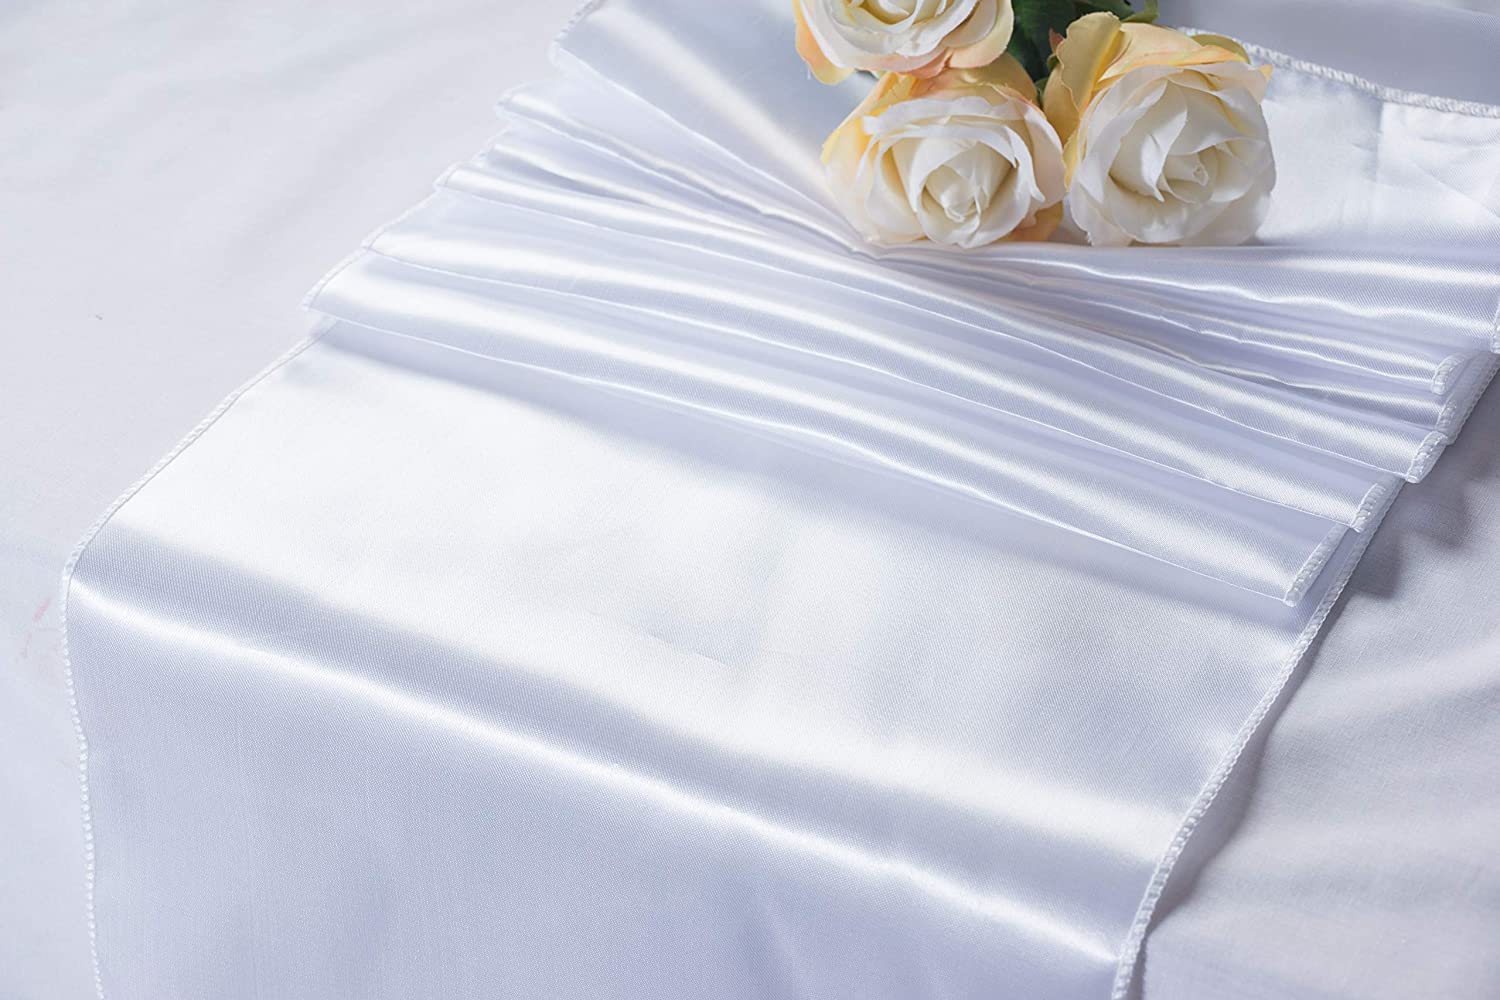 Juvale White Table Runner Tablecloth Runner Decoration Birthdays Special Occasions Baby Showers Catering 108.3 x 11.8 inches 10 Pack Wedding Table Runners Perfect for Weddings